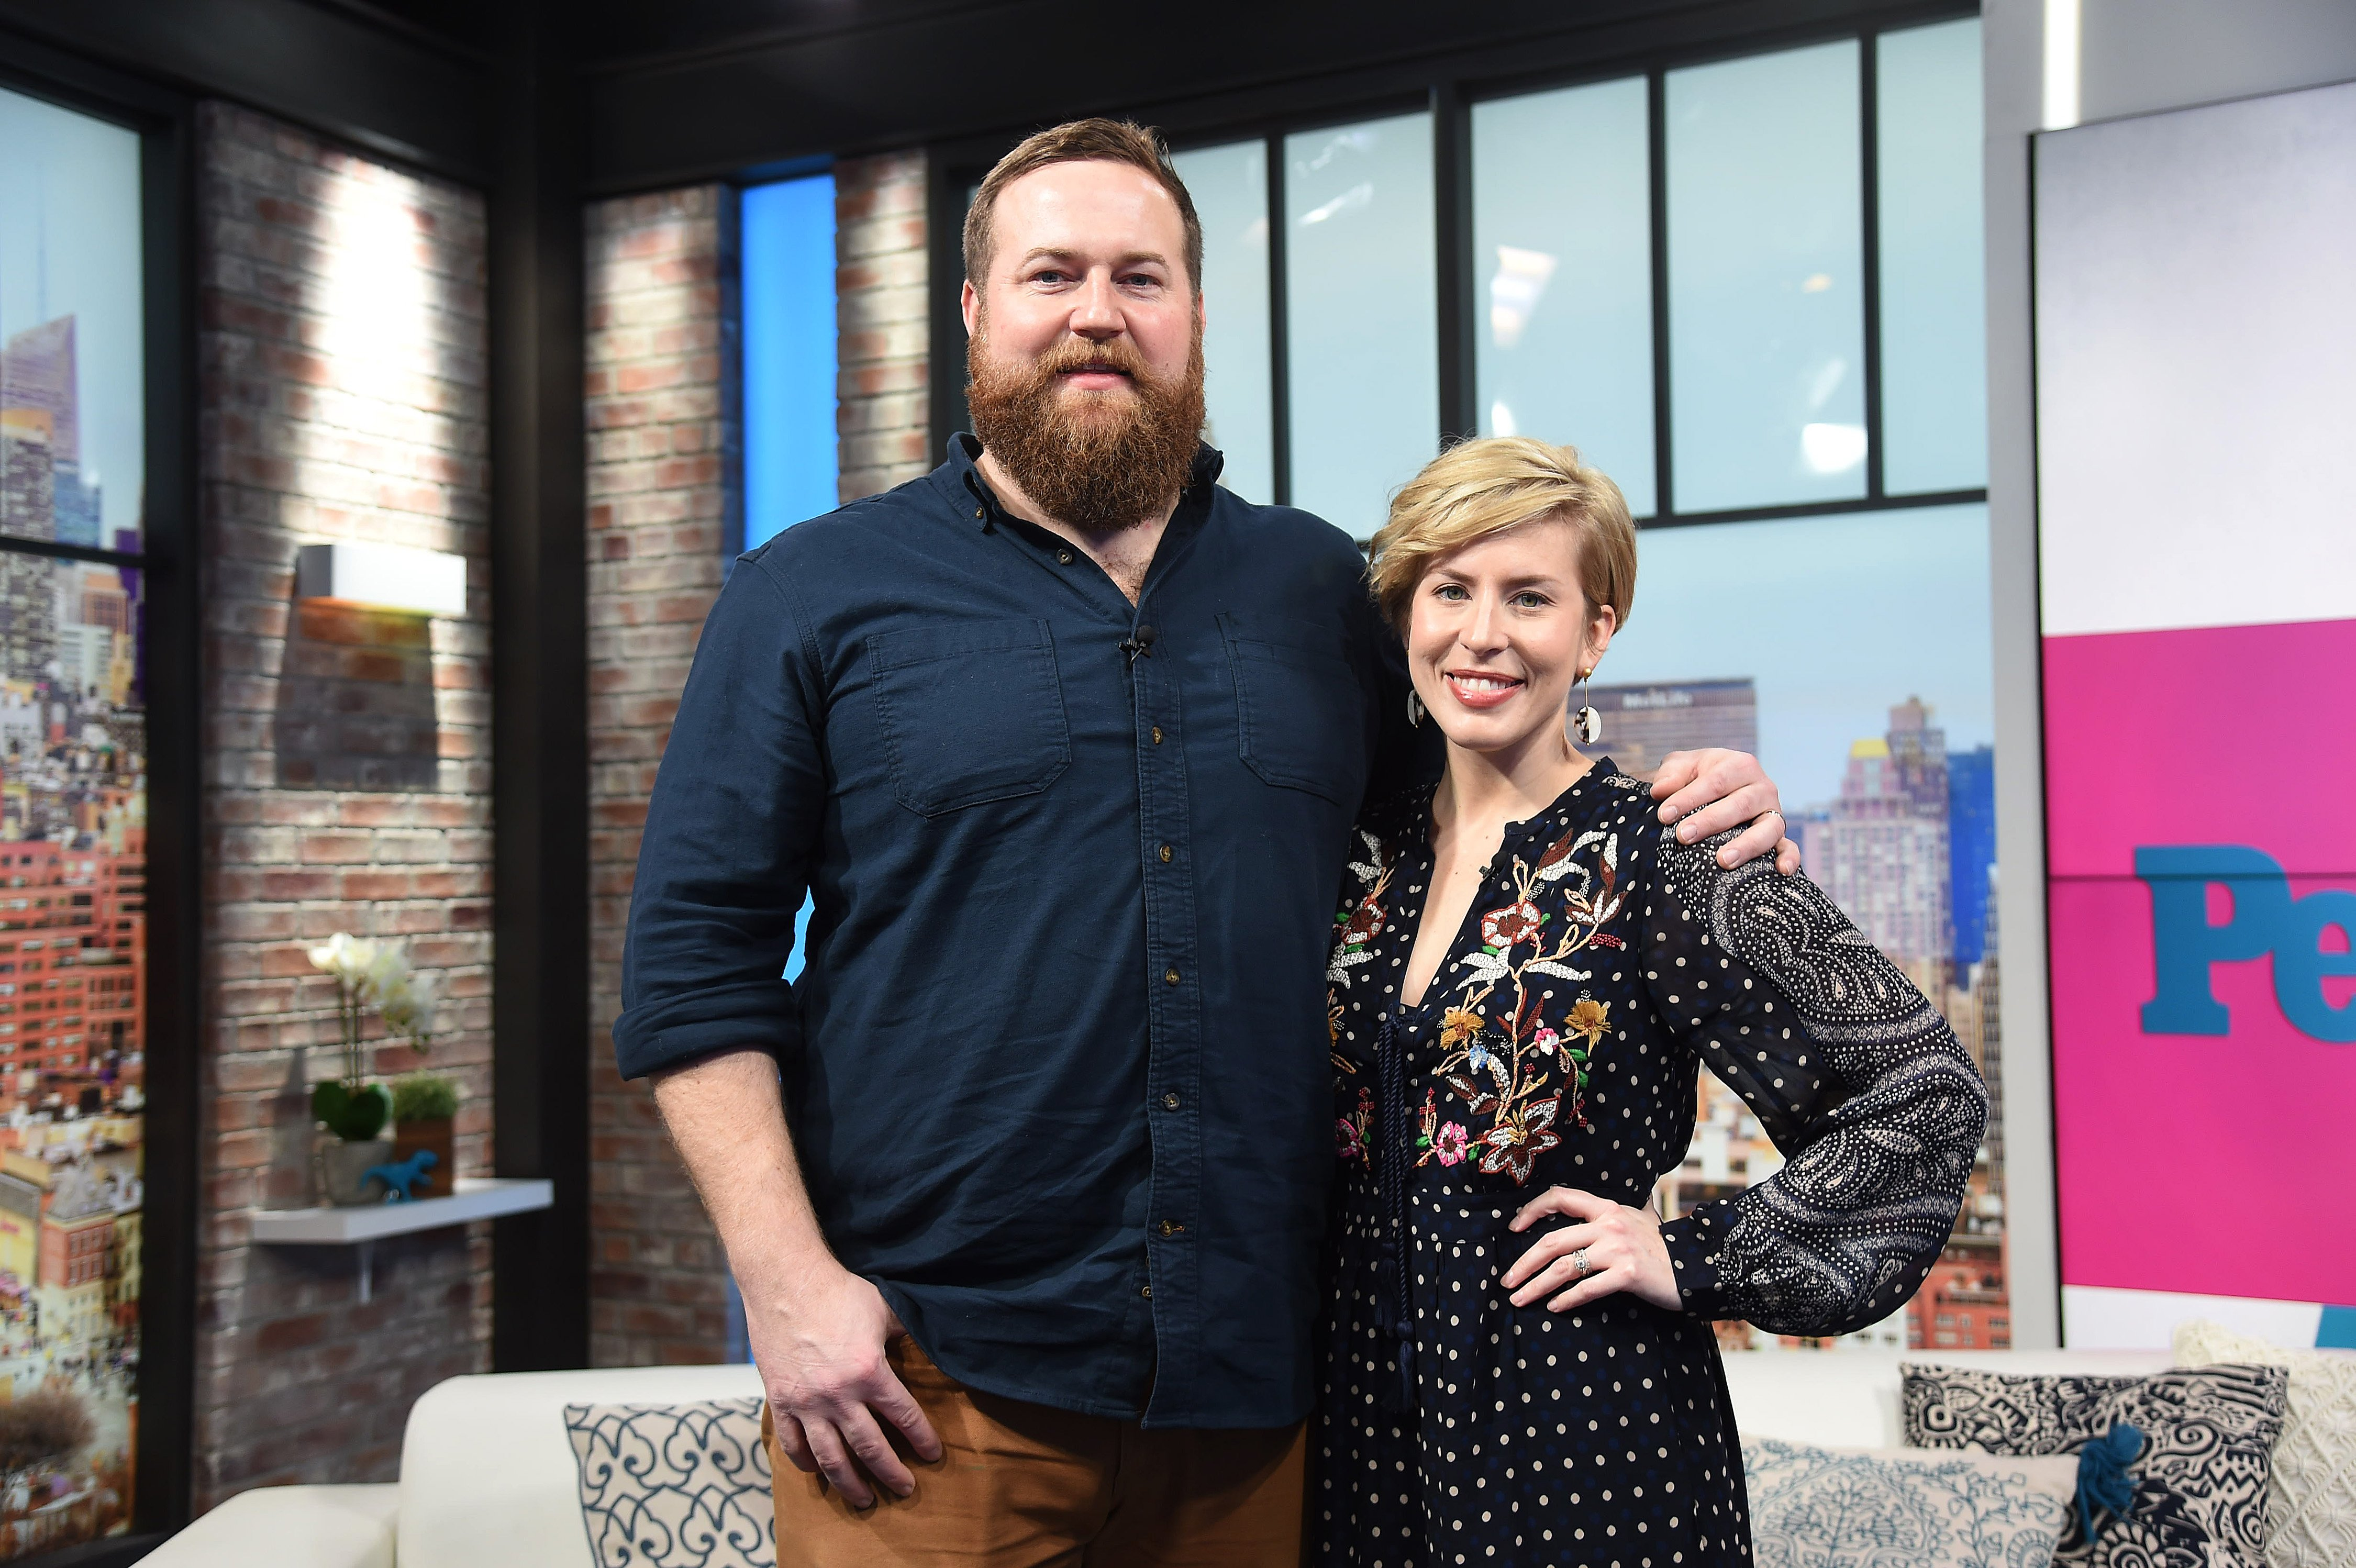 HGTV stars Ben Napier and Erin Napier visit People Now, 2020, New York City.   Photo: Getty Images